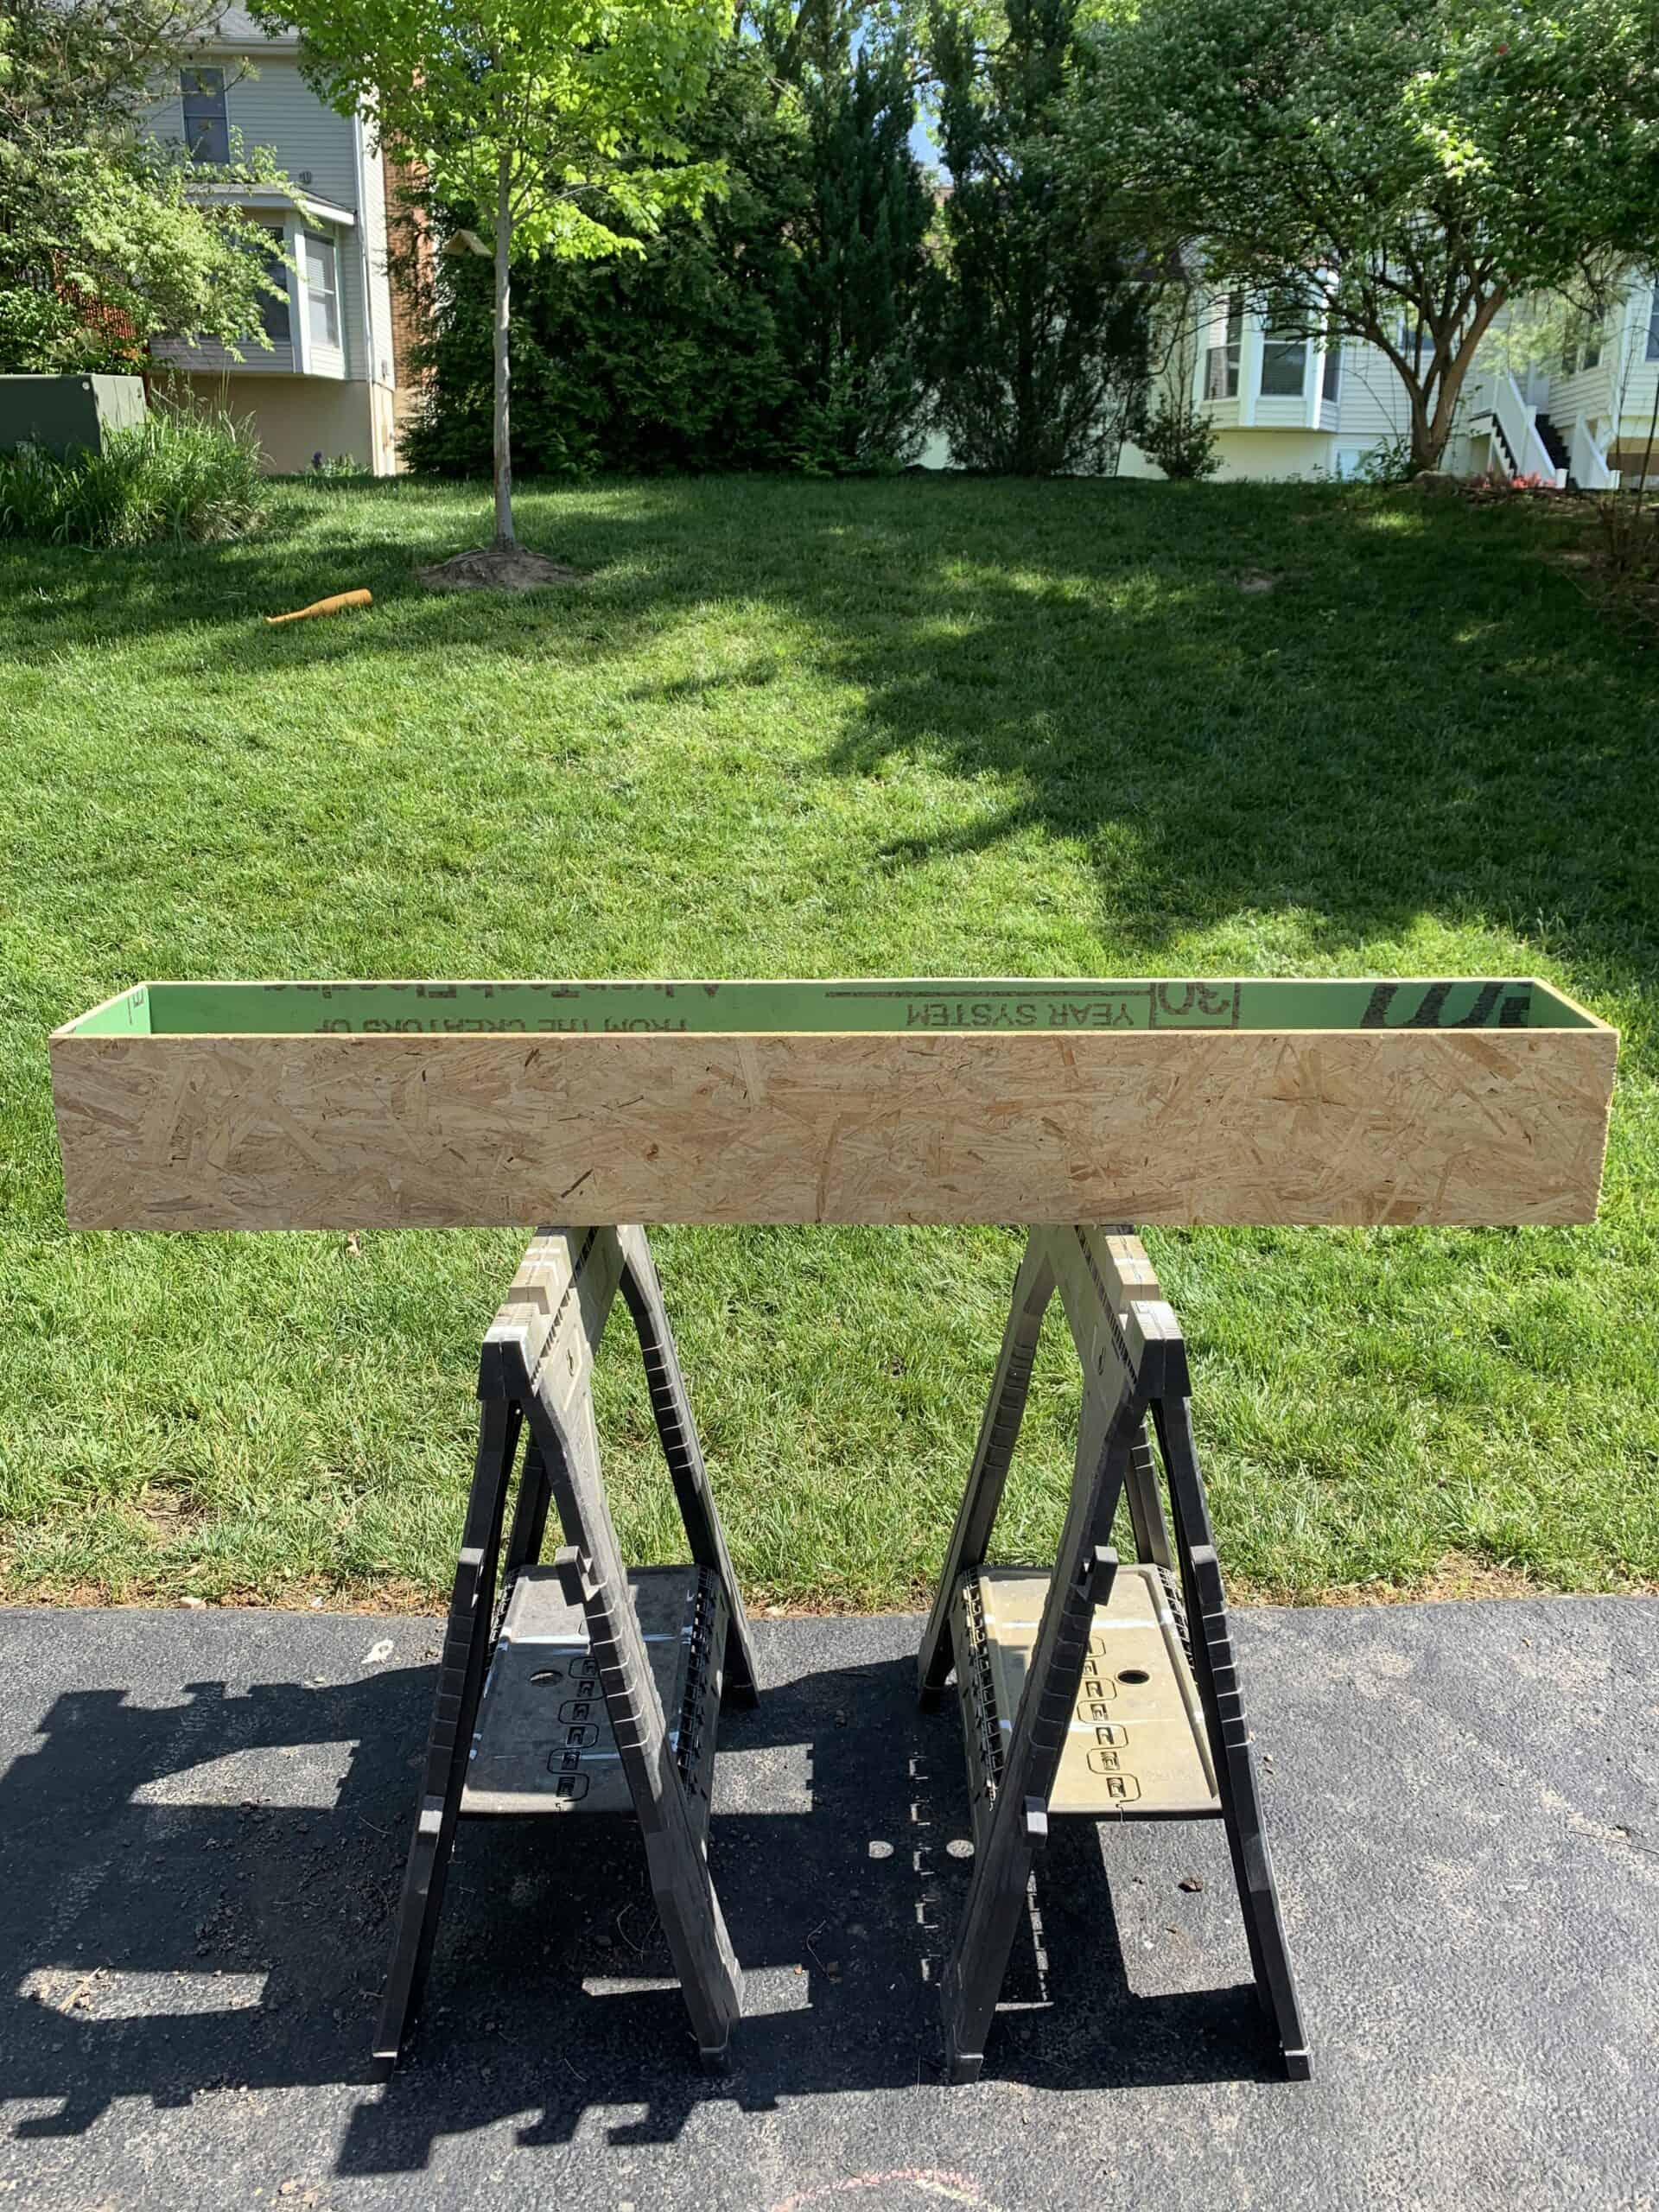 plywood planter box on saw horses